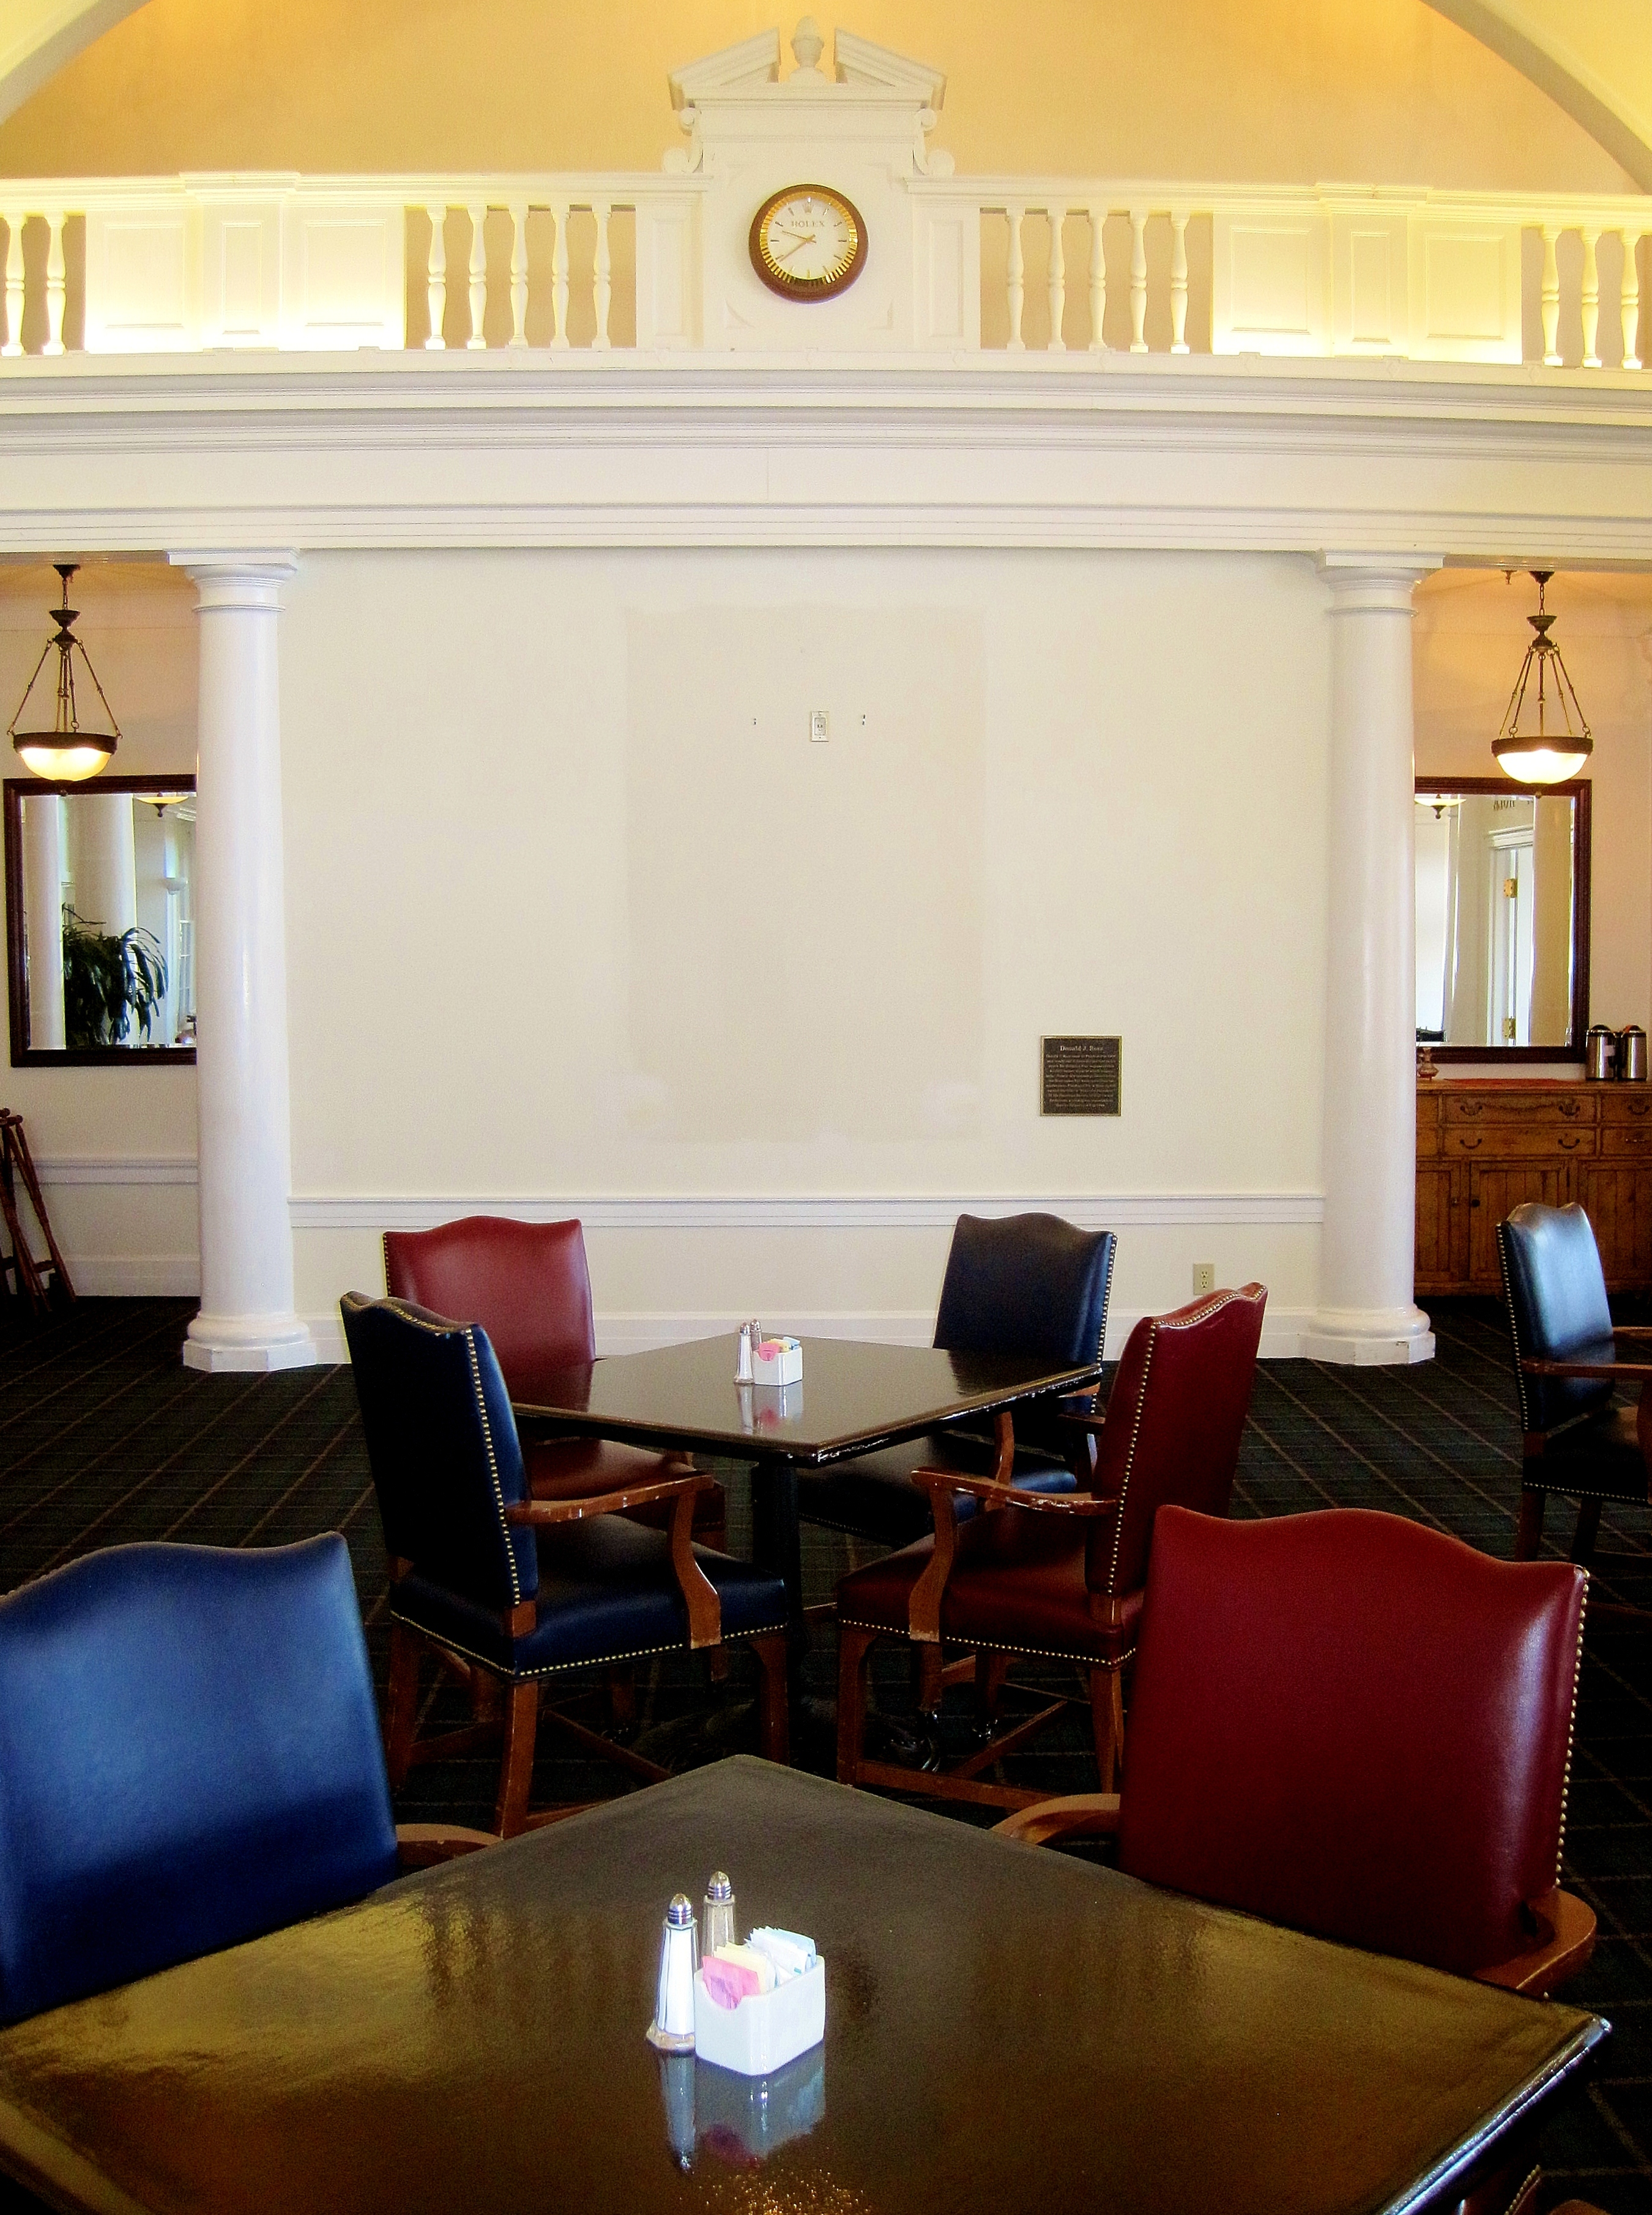 A blank space remains for the time being at Pinehurst's Donald Ross Grill while the portrait of the famed golf course architect is restored this month.